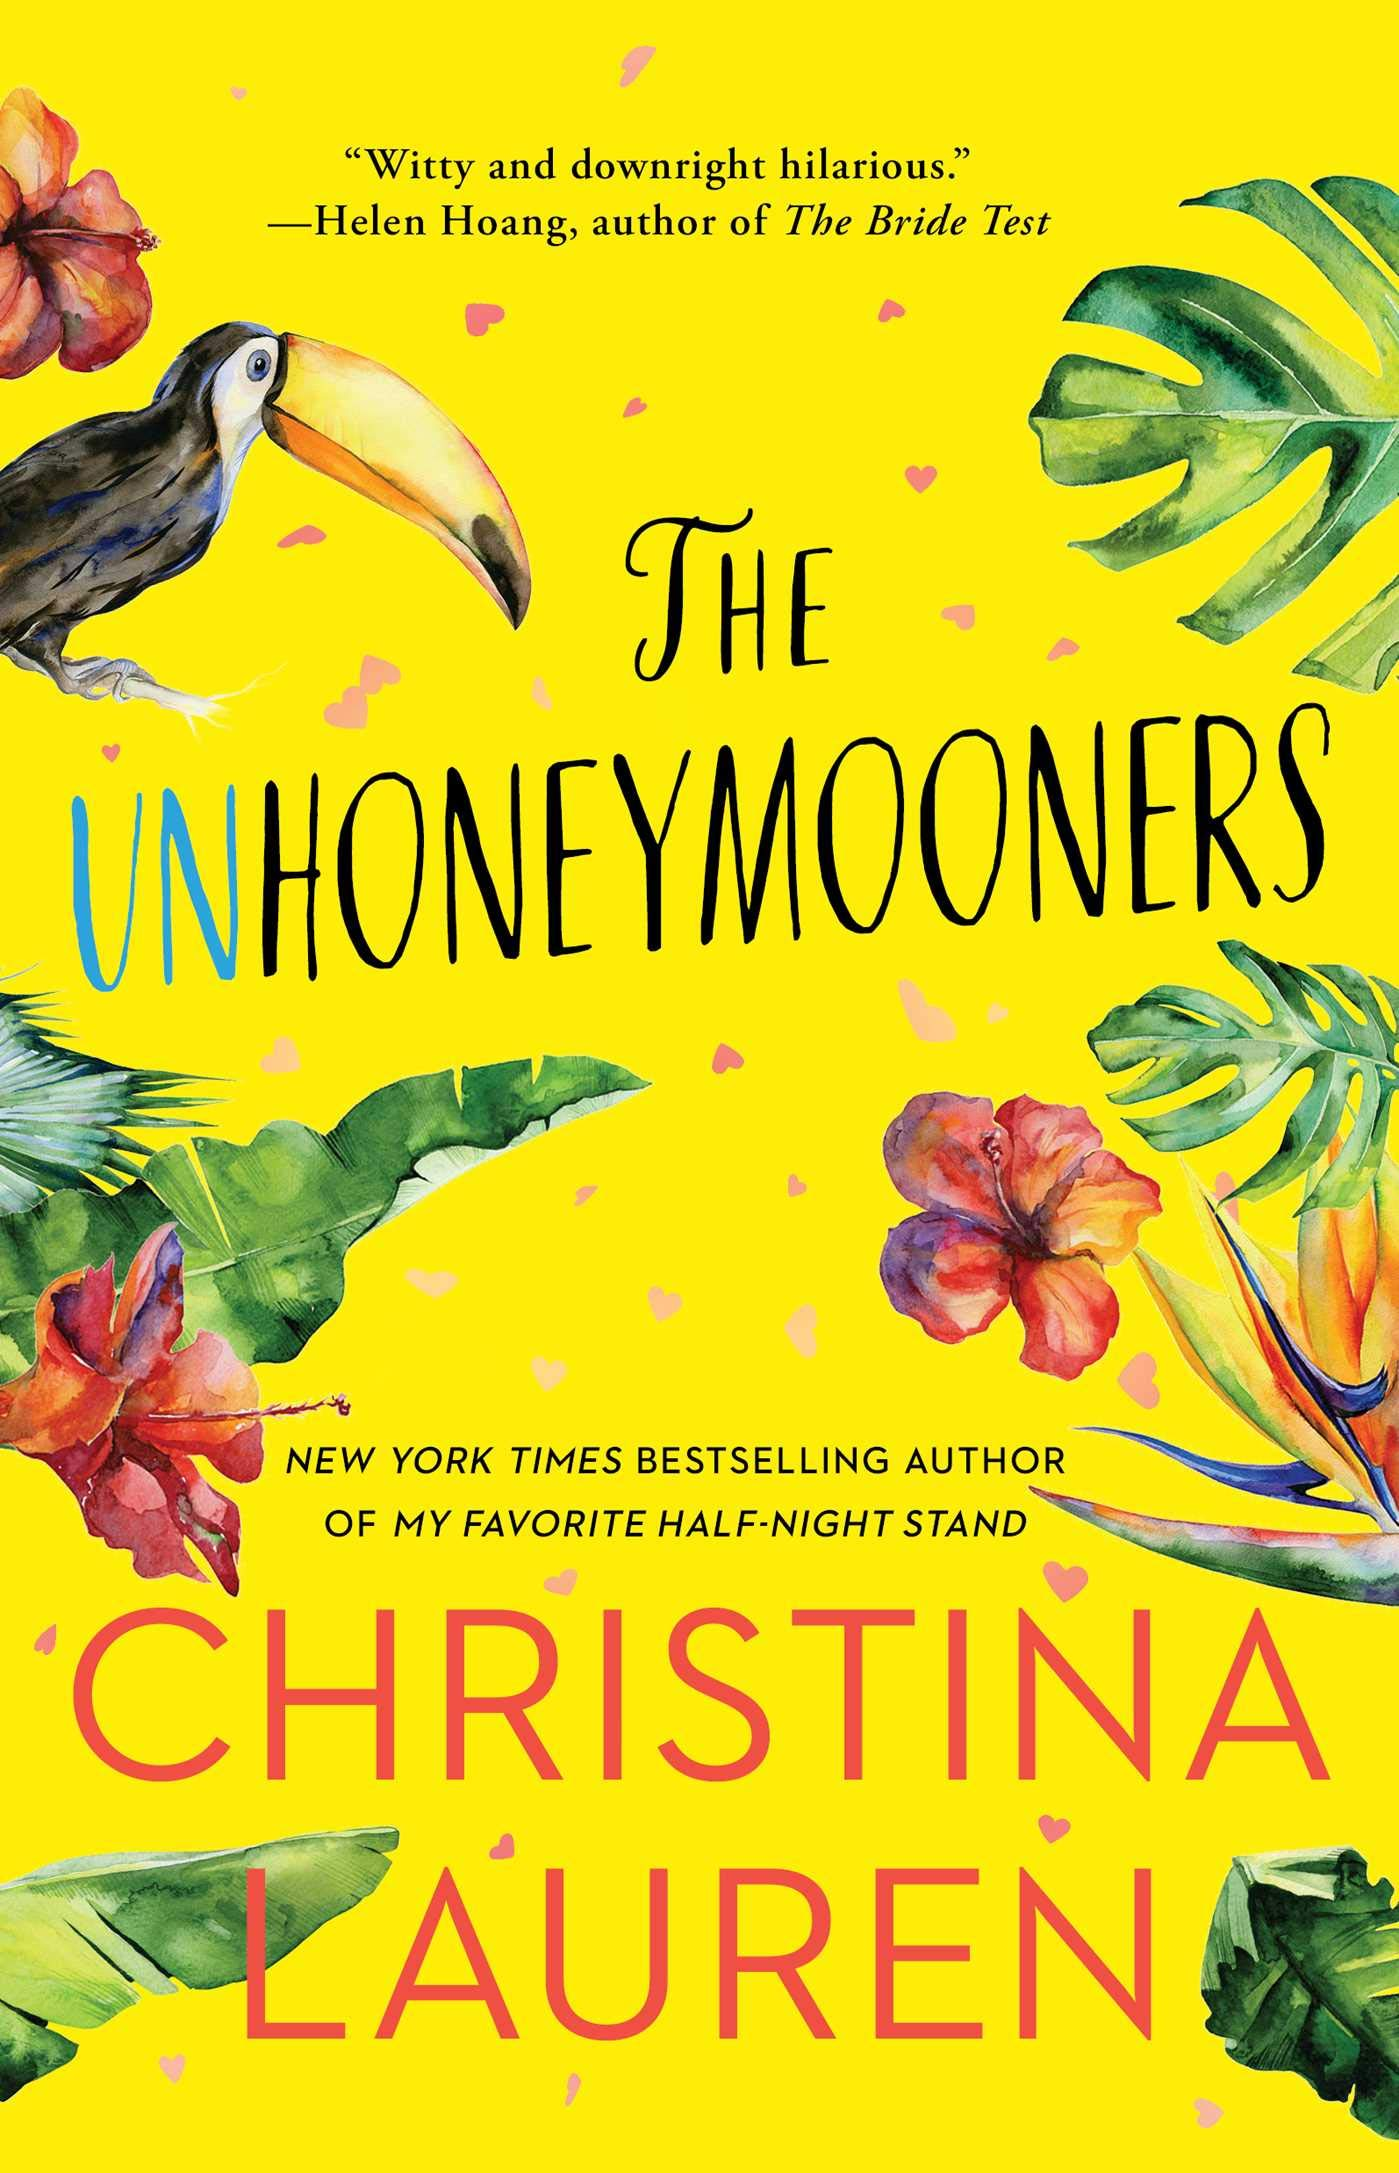 The Unhoneymooners by Christina Lauren on Ashley Brooke Designs